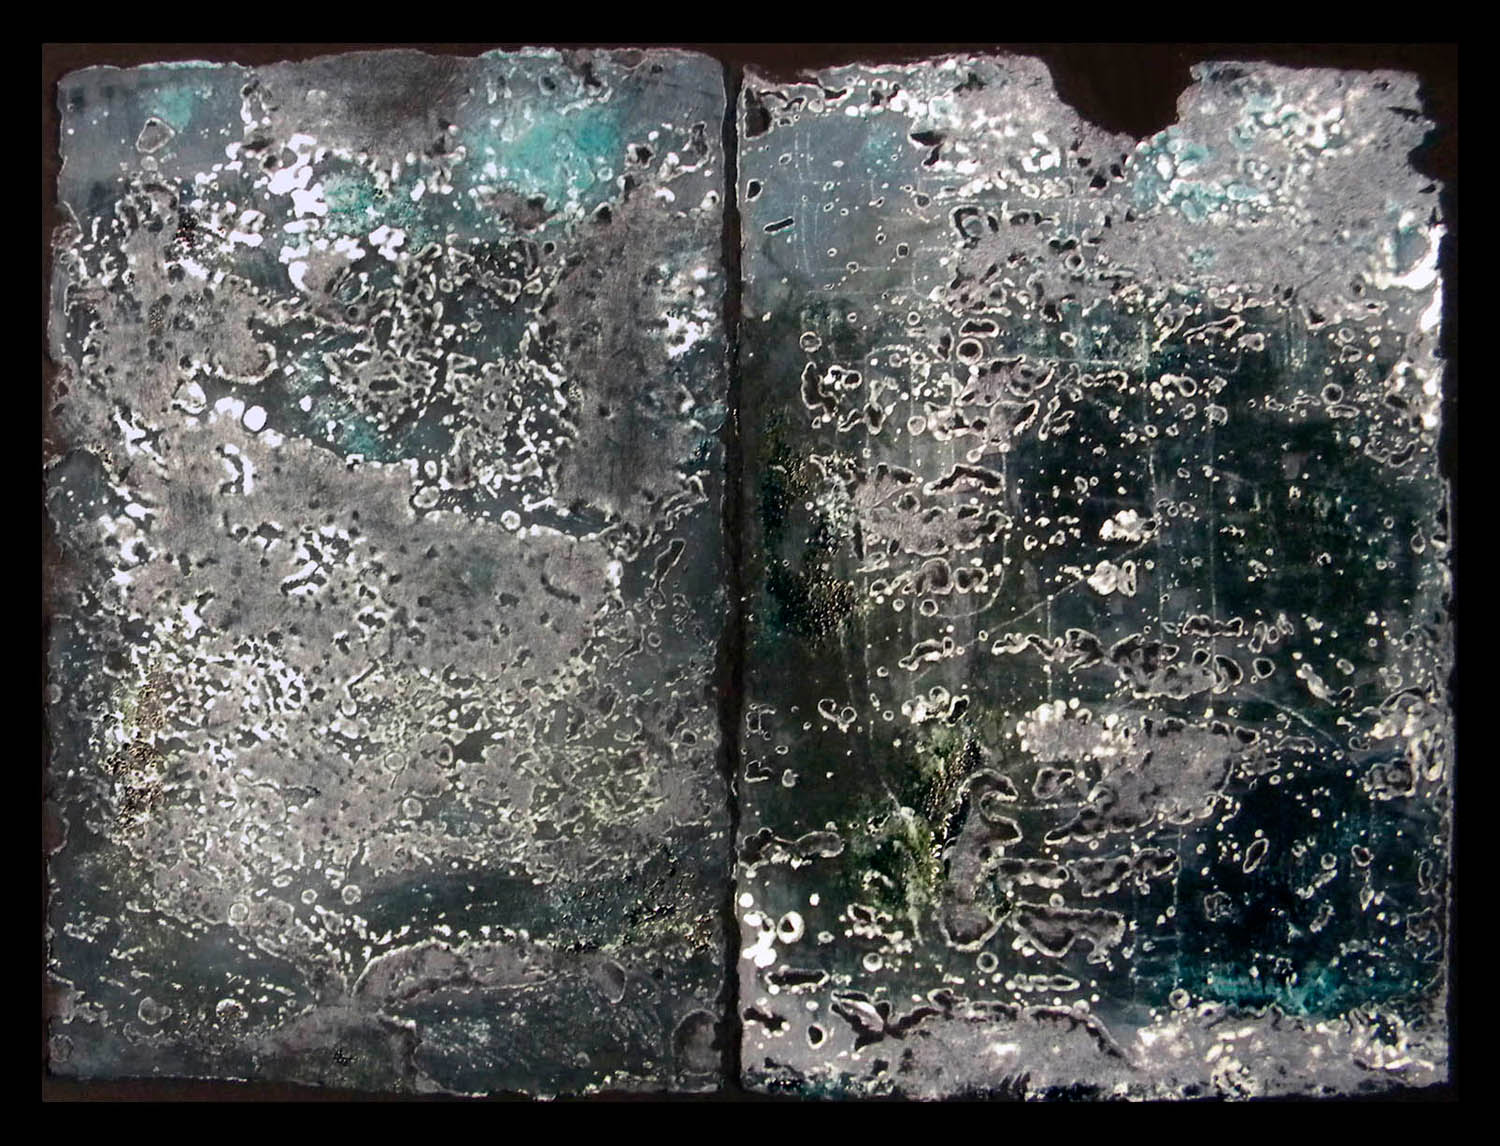 "Aquatic II, etching diptych/black paper, image 9.3x12.4"", paper 14x15"""